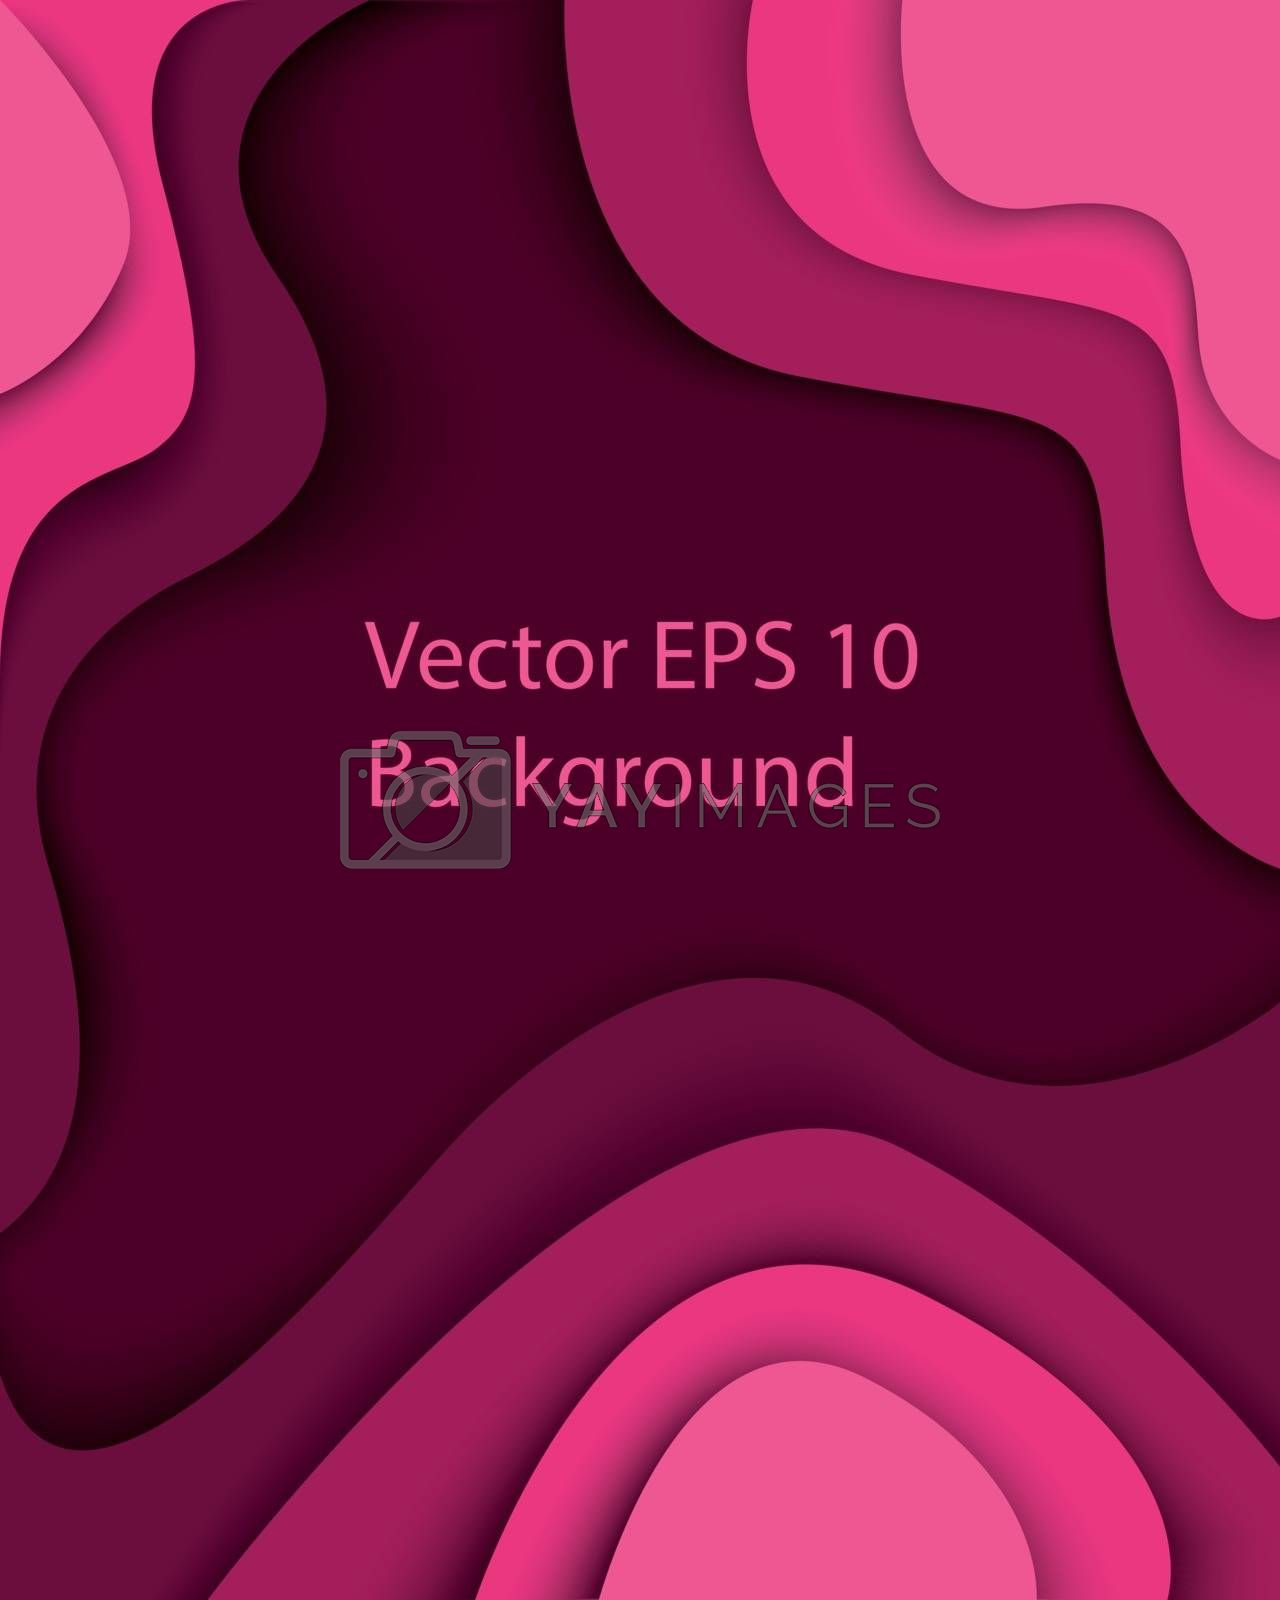 Pink purple paper cut modern abstract background with curved shapes with shadows. 3D abstract paper art style, design layout for business presentations, flyers, posters, prints, decoration, cards, brochure cover. Eps10 Vector illustration.